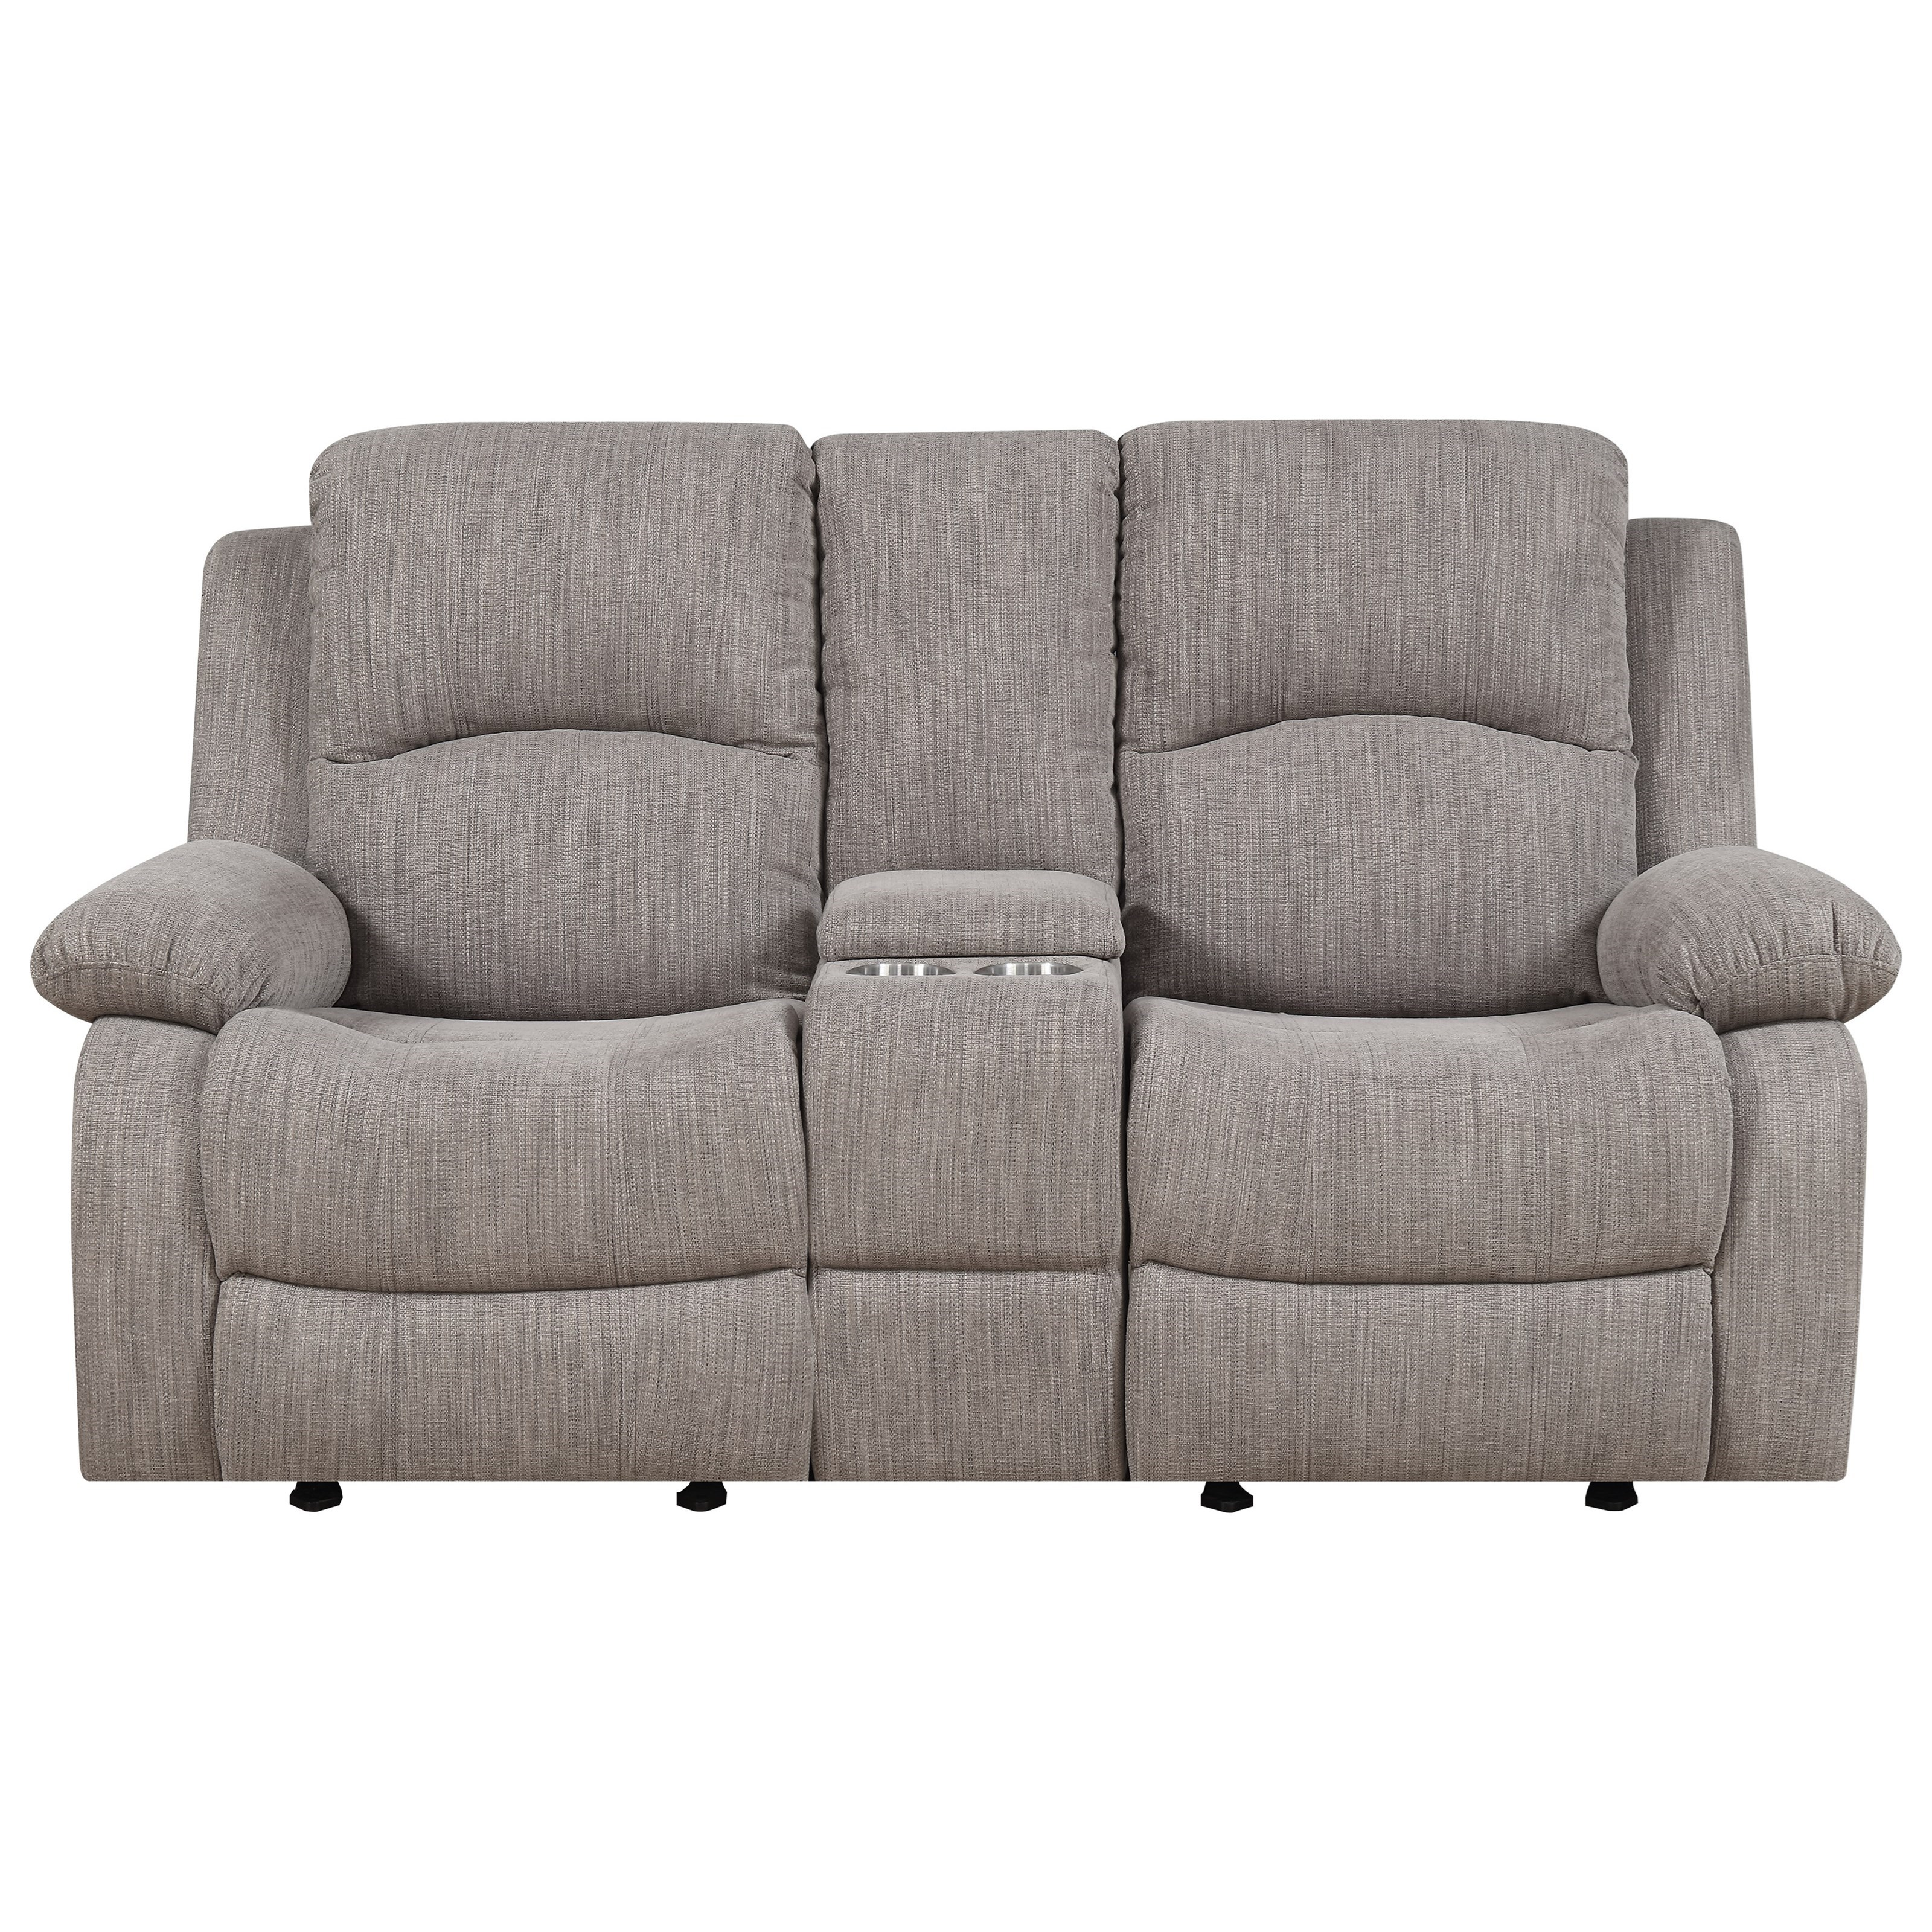 Hennessey Reclining Glider Console Loveseat by Emerald at Suburban Furniture